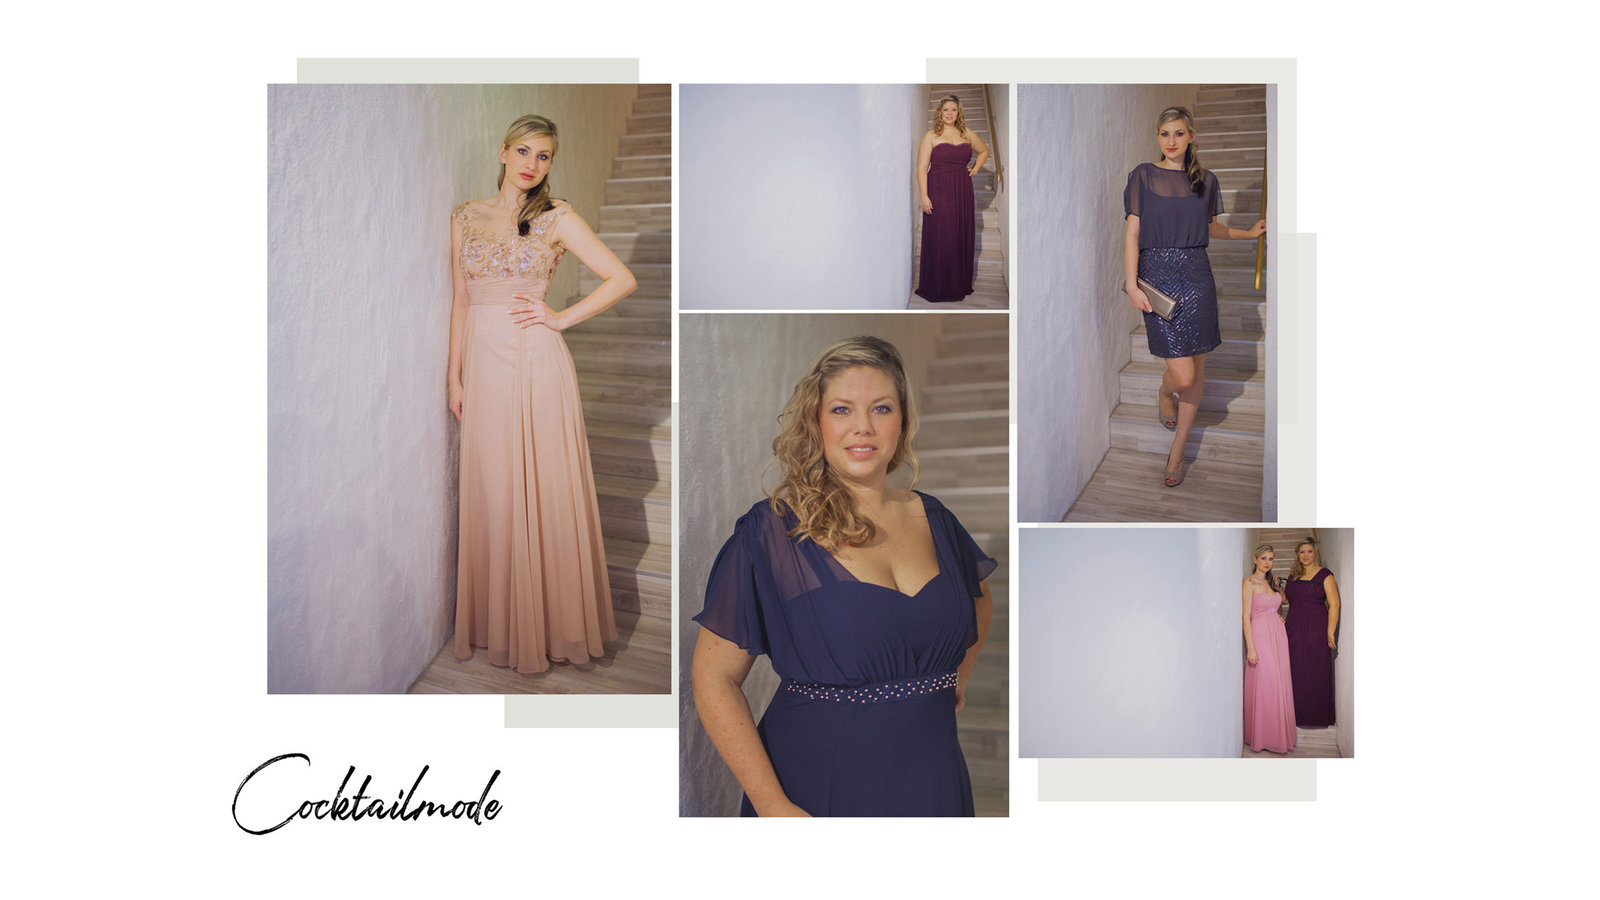 003_hostettler-mode_festmode_cocktail-kleid